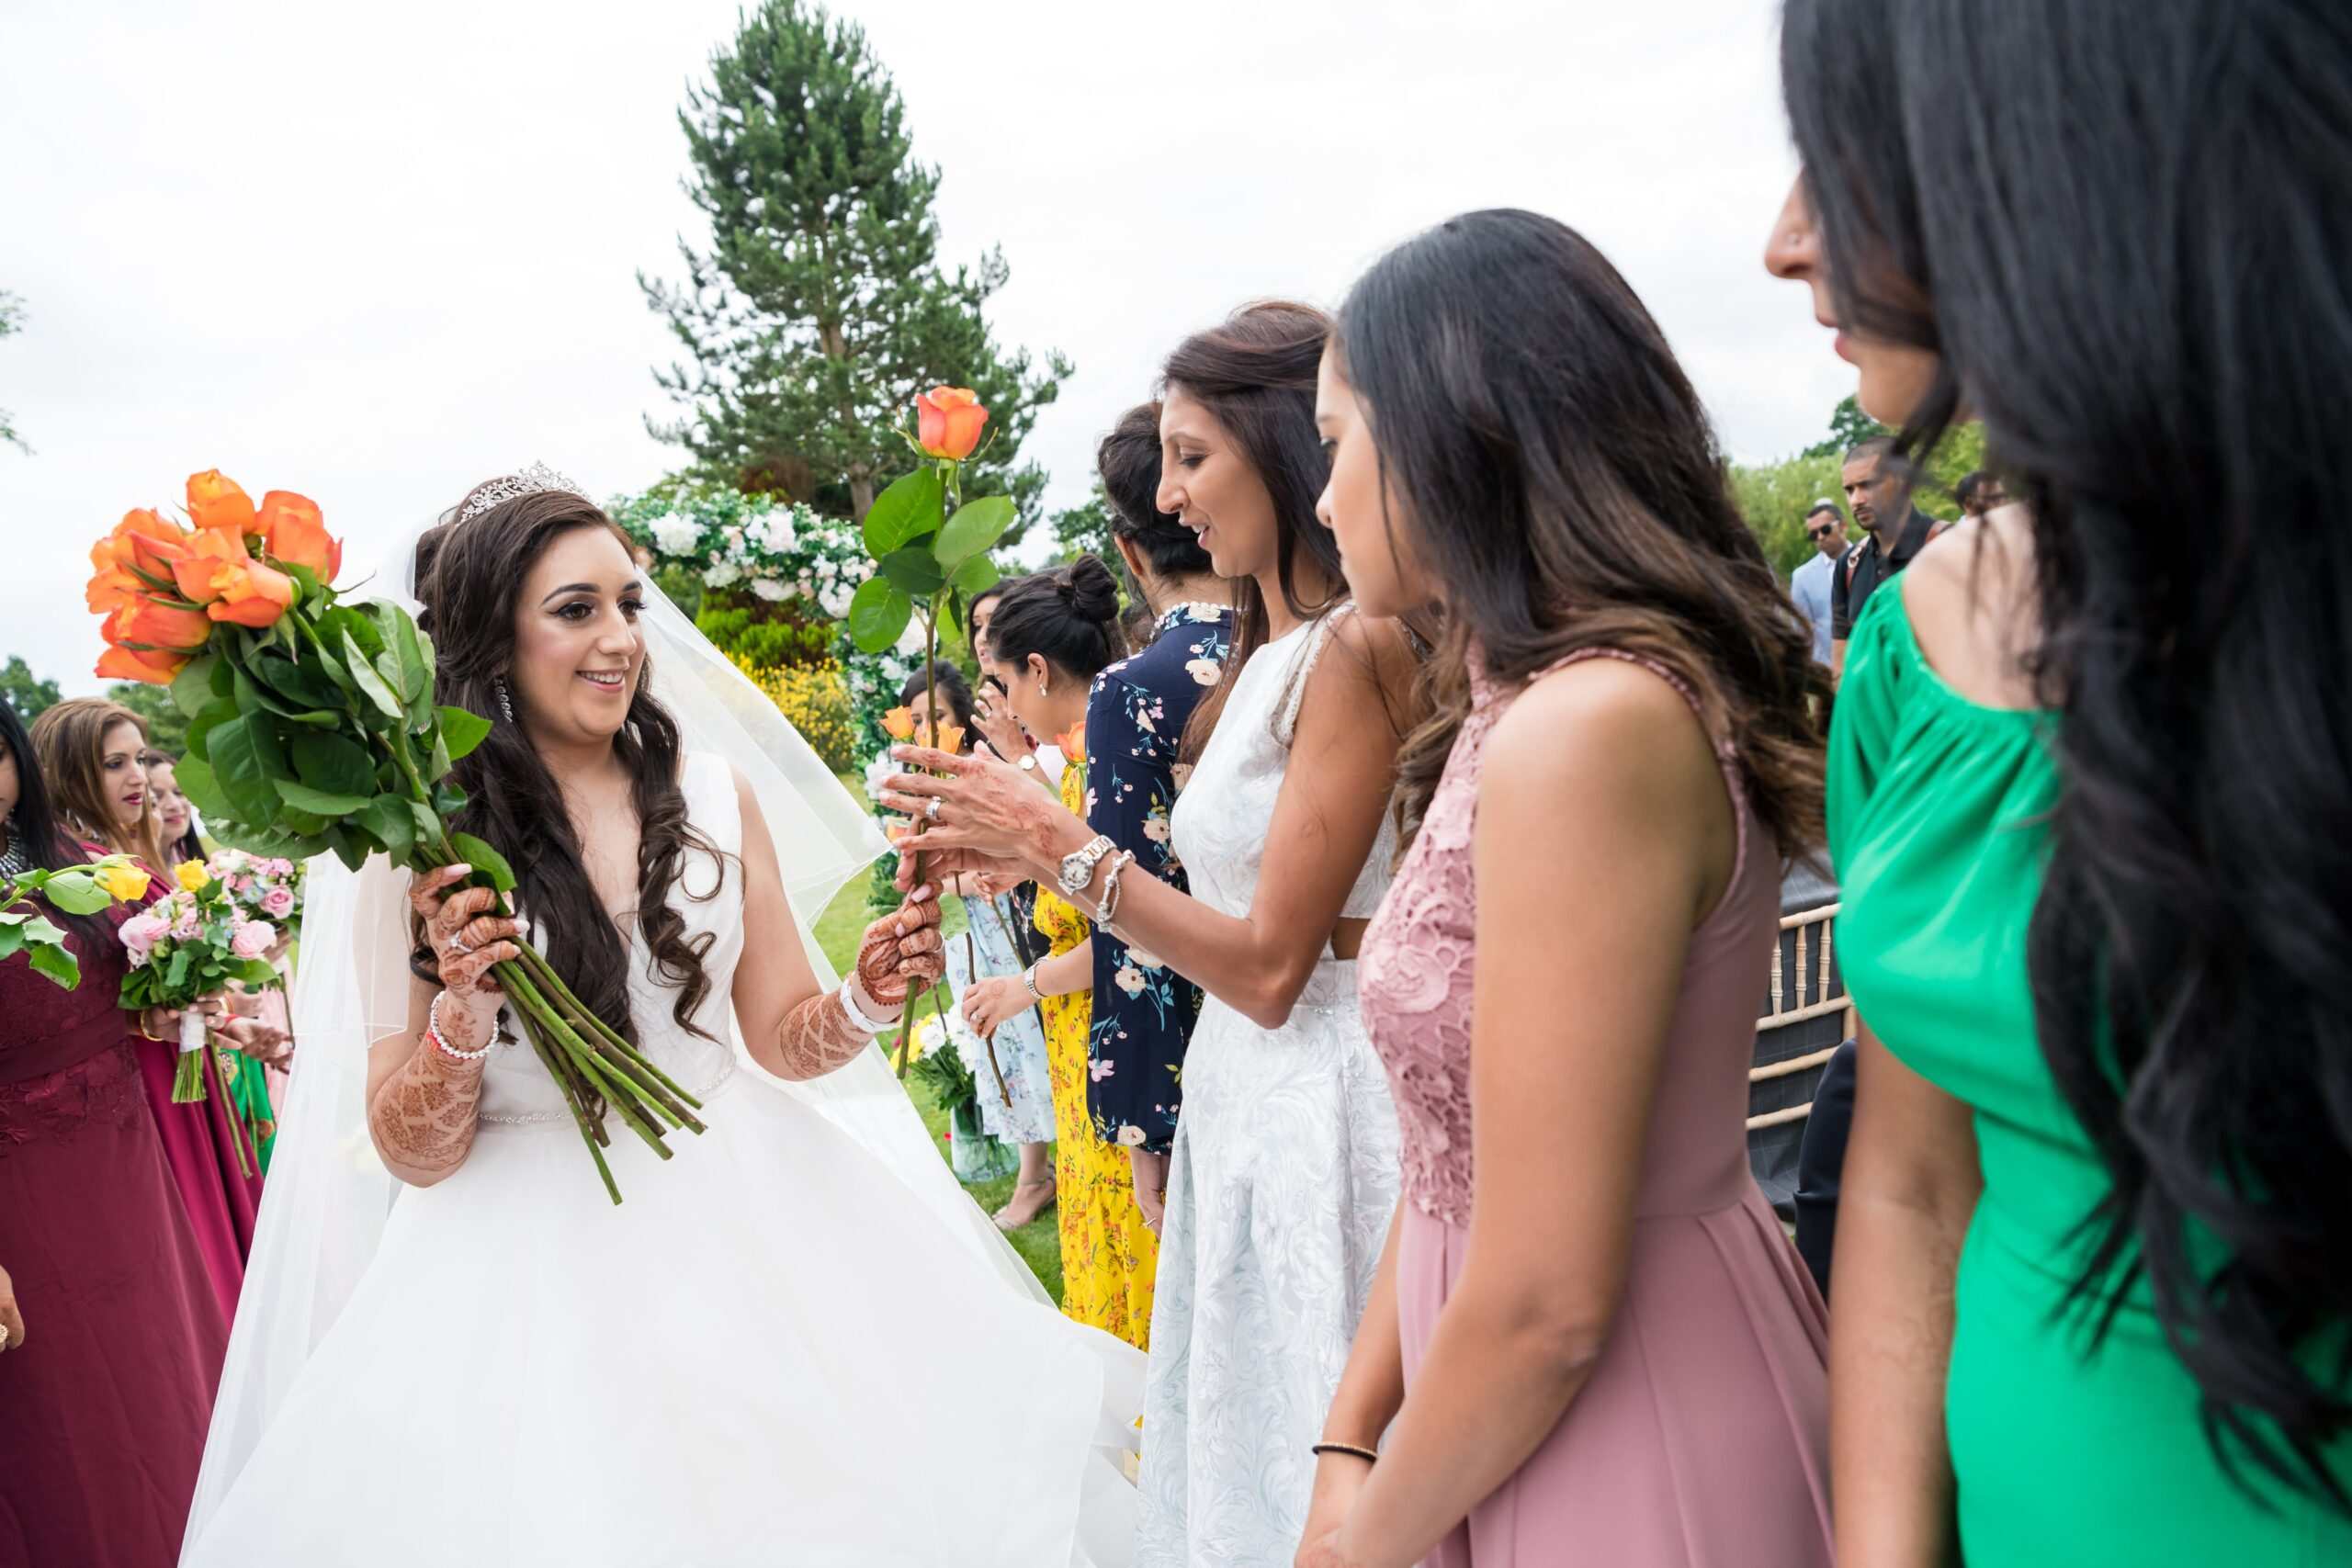 The Rose Ceremony in an Asian Wedding